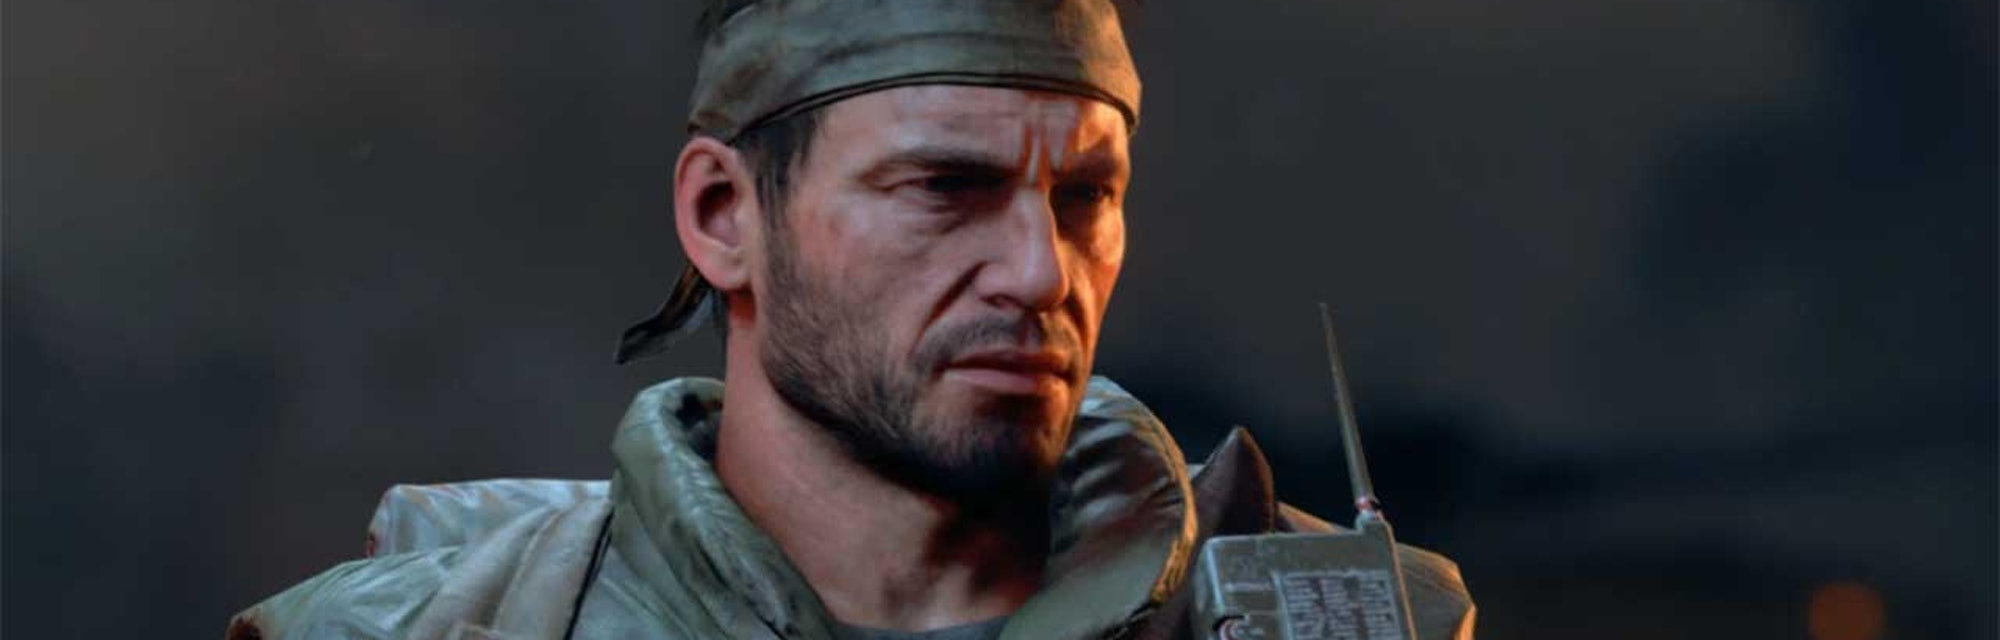 Call Of Duty 2020 Classified Leaks Hint At Vietnam And Soviet